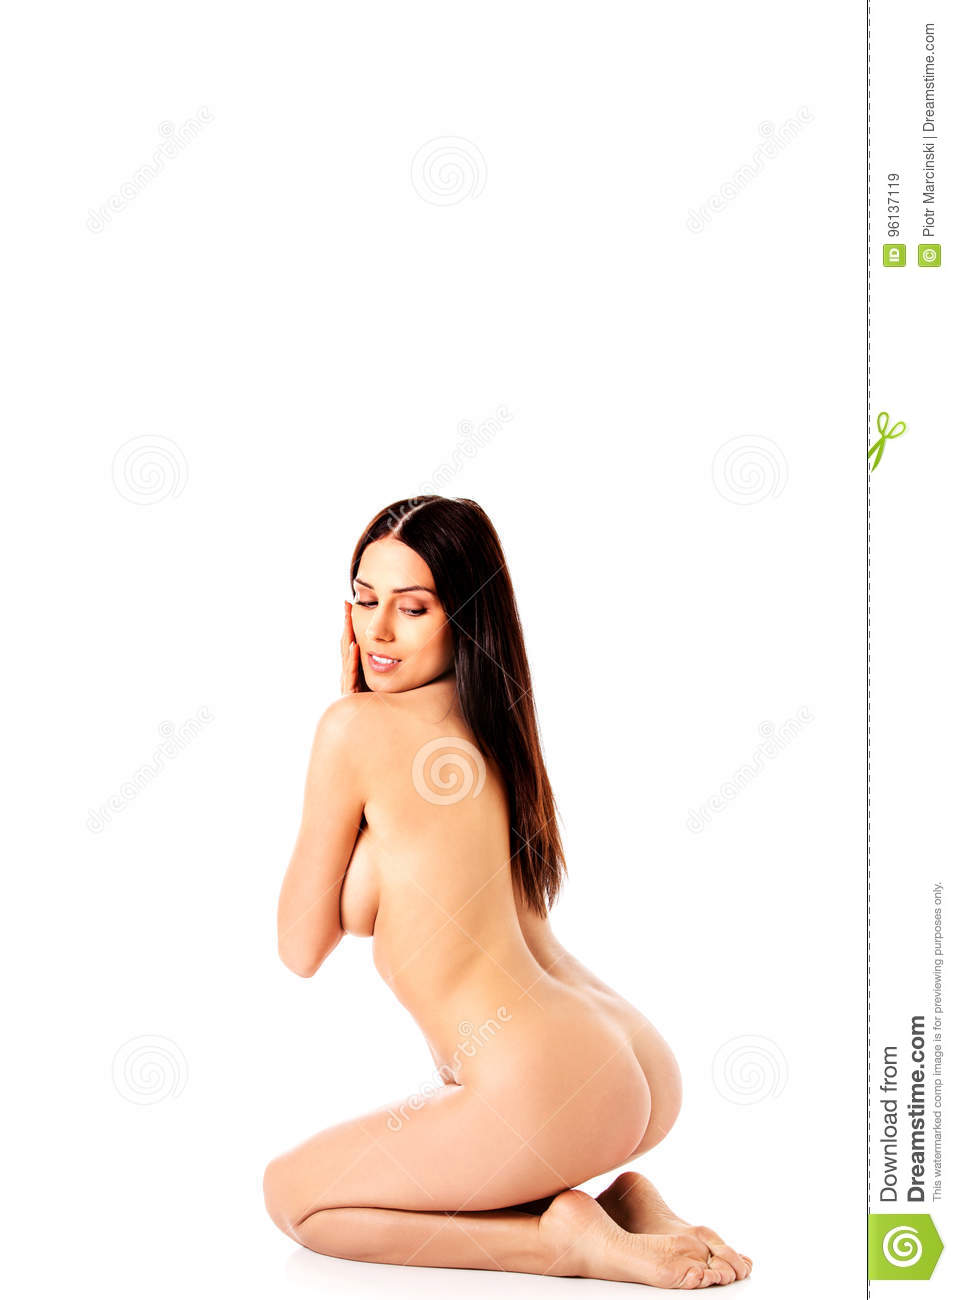 Free Nude Woman Kneeling Submissive